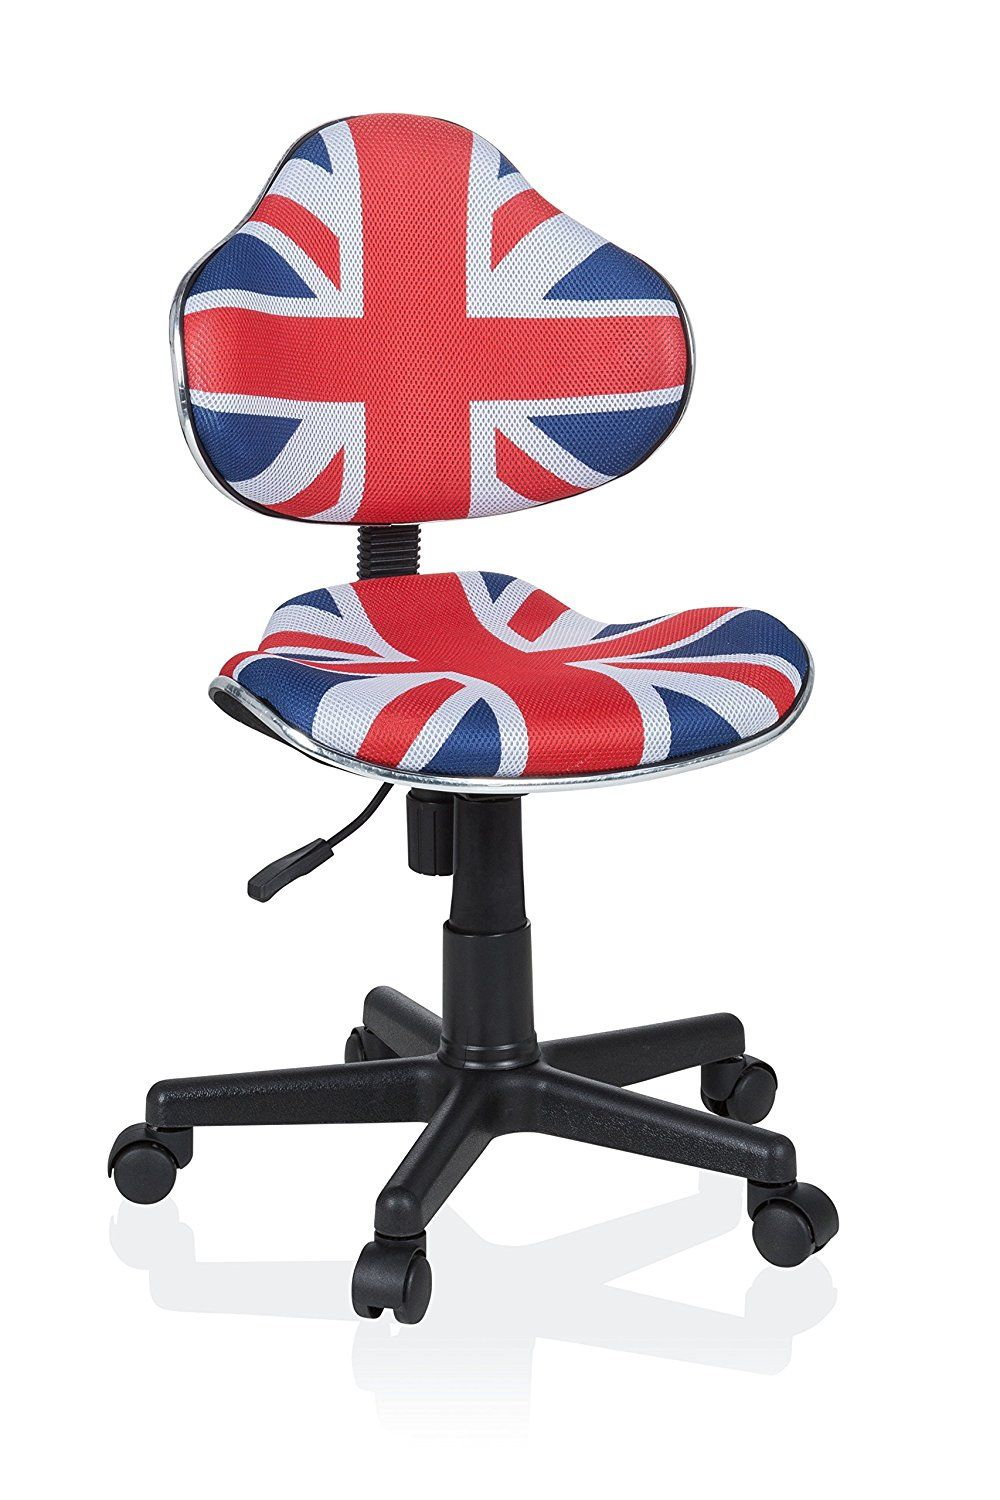 Chaise Bureau Ergonomique Enfant hjh office 670932 chaise bureau pour enfant kiddy gt-2 flag